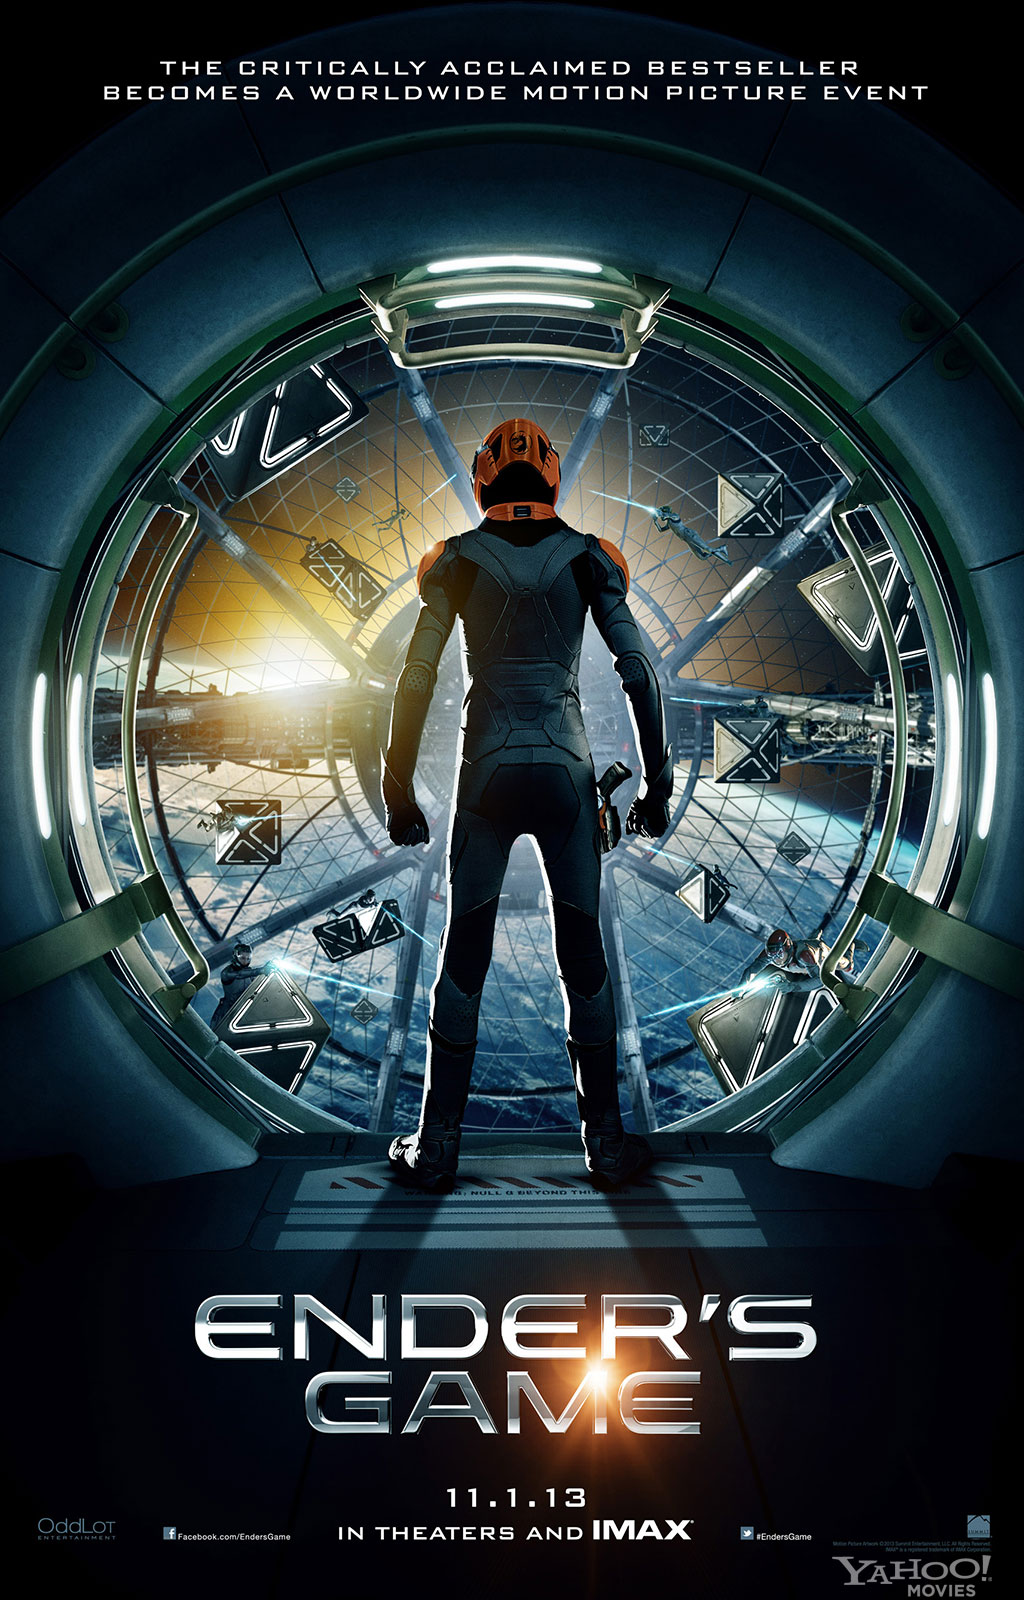 Ender's Game poster with Asa Butterfield as Ender Wiggin - scifiempire.net